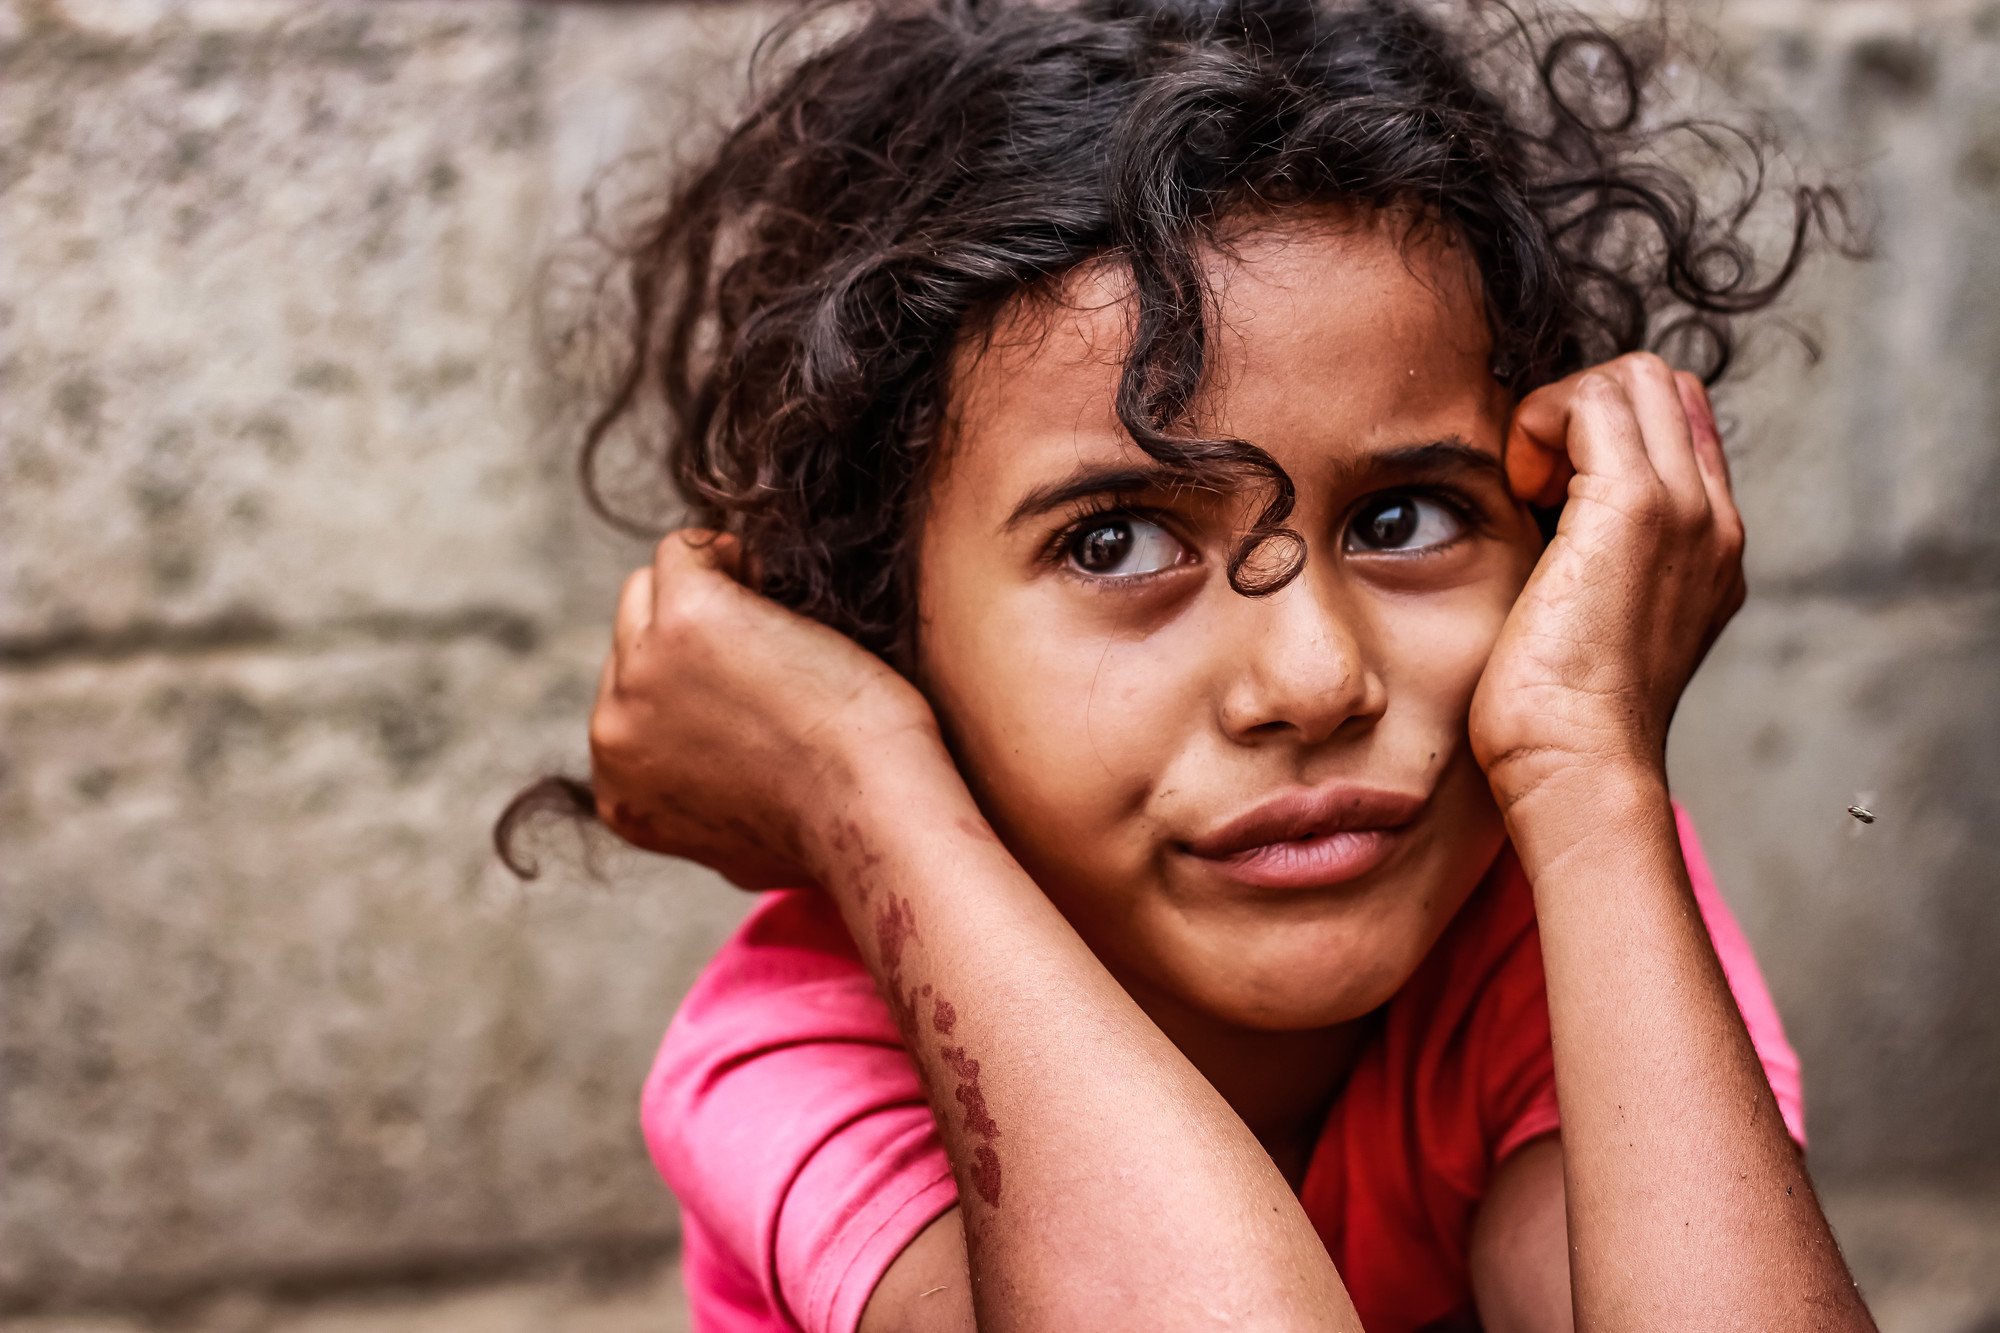 A young girl holds her head in her hands with a sad expression on her face.